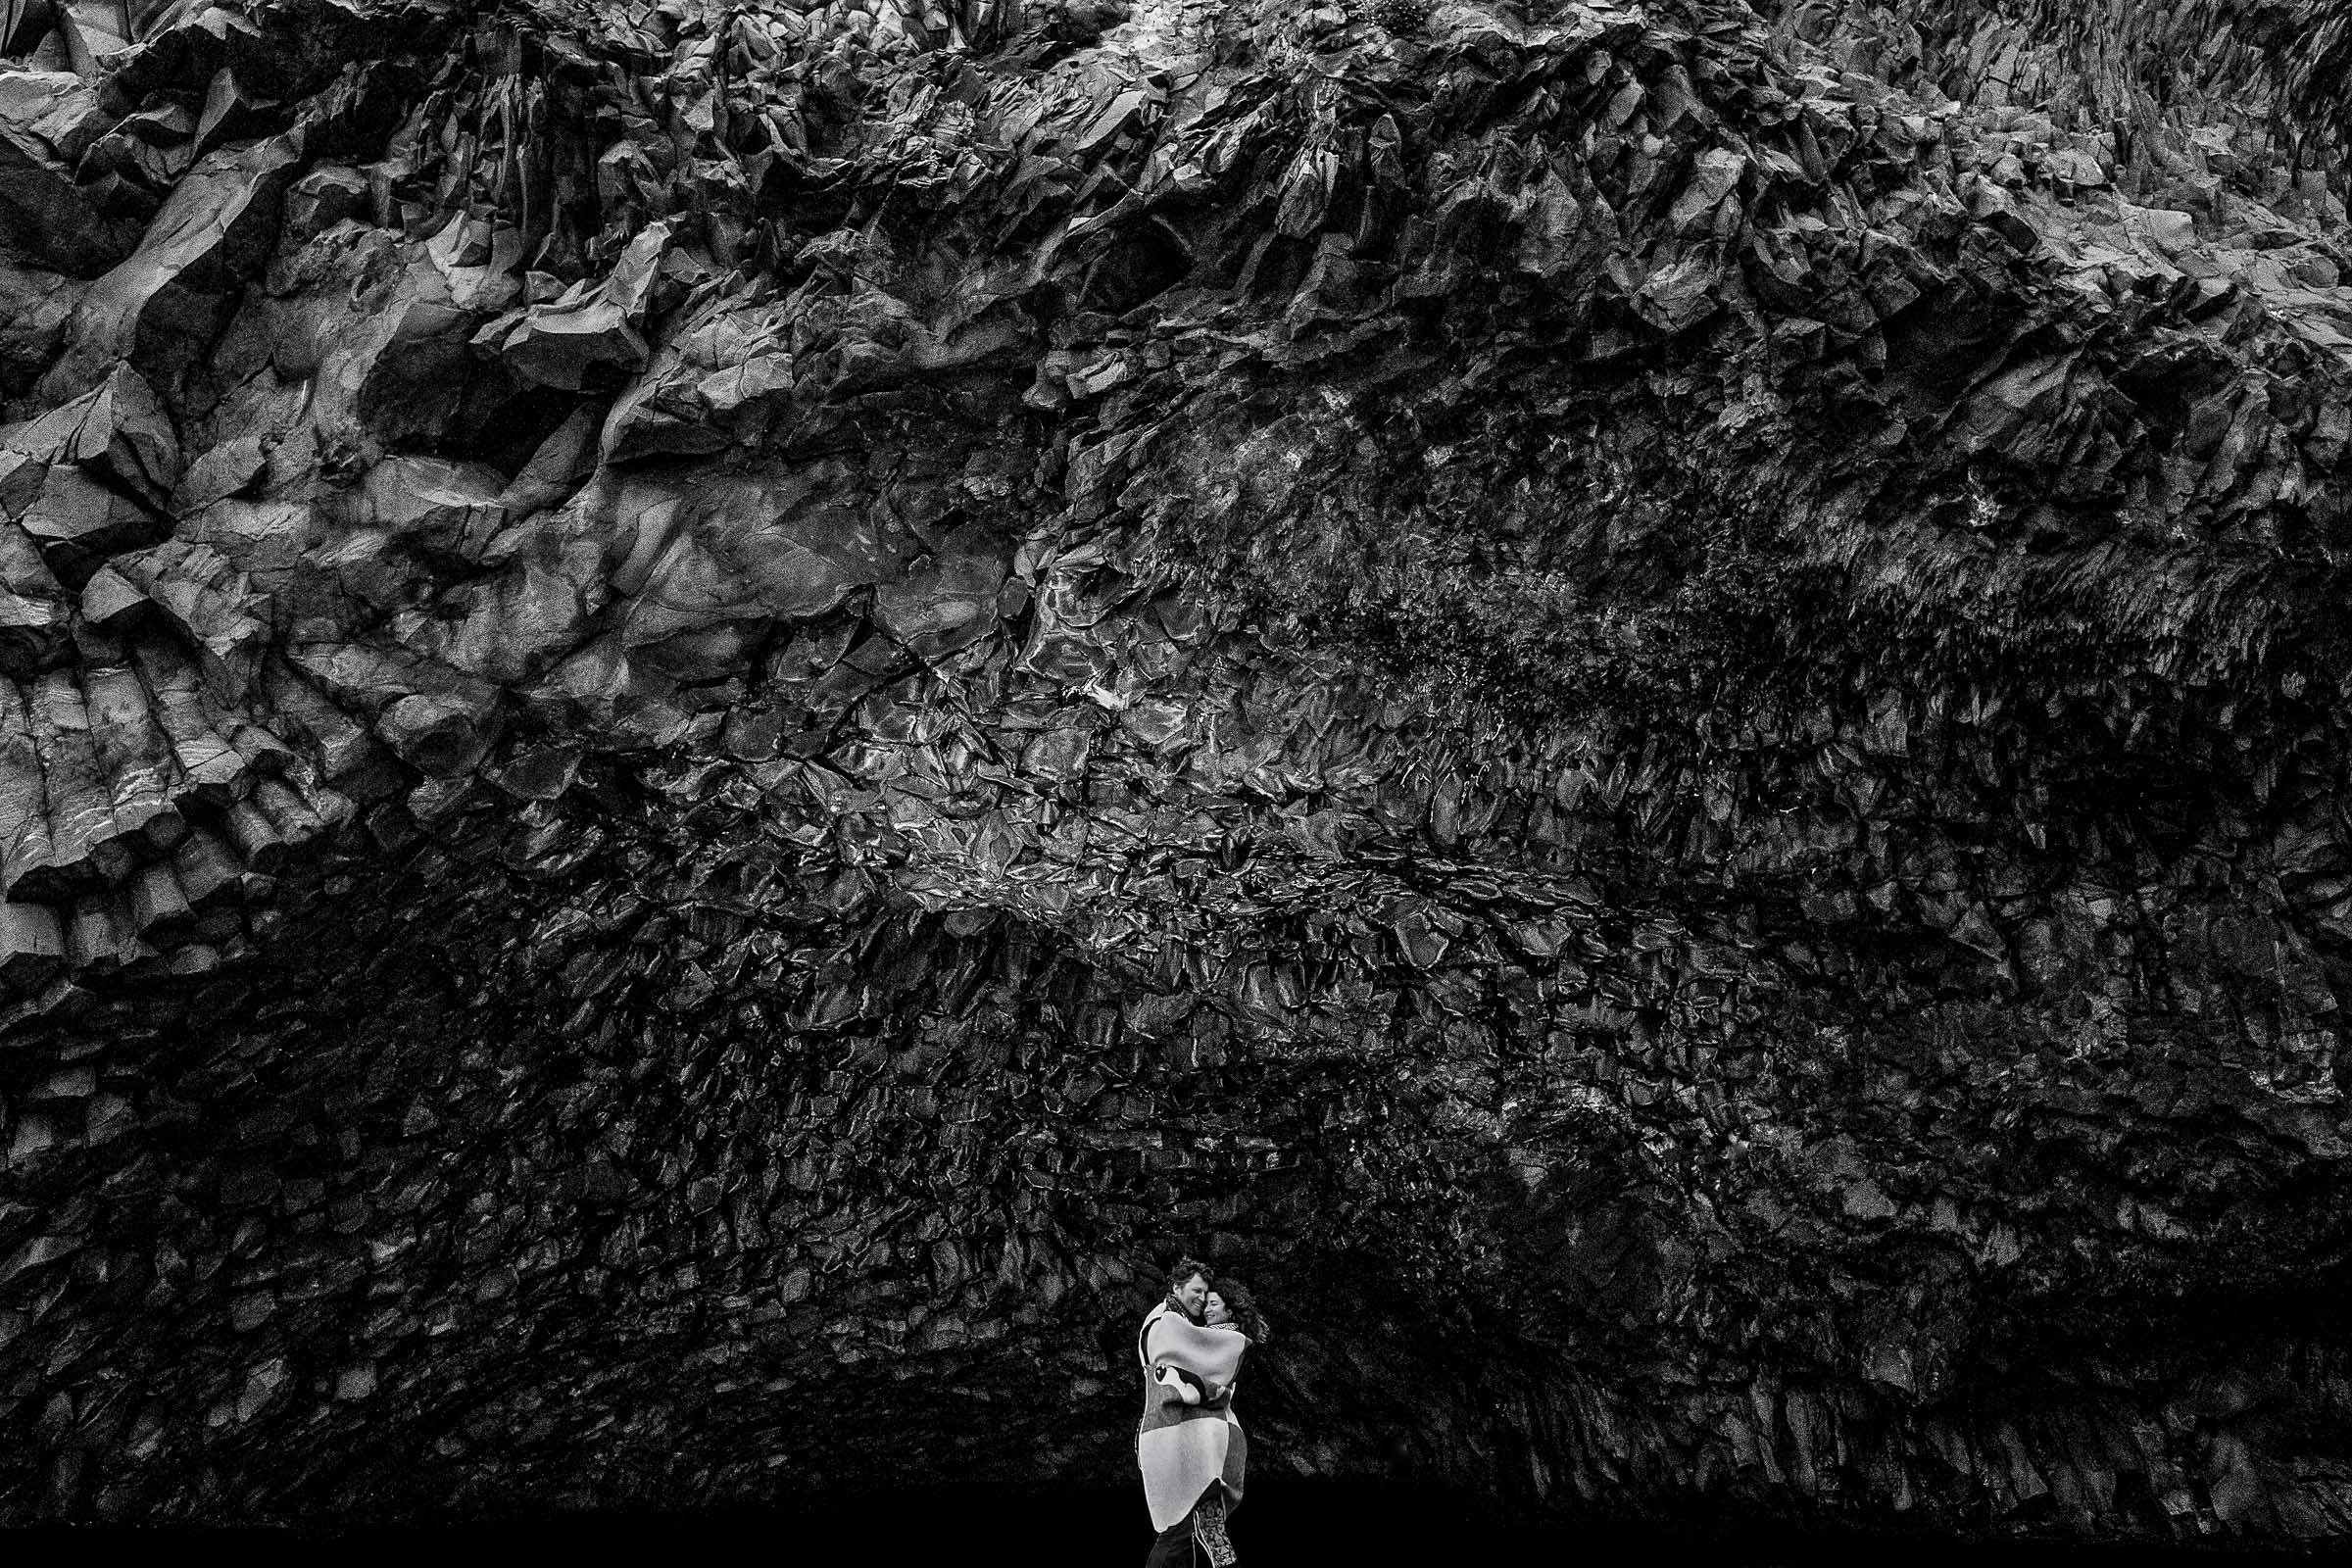 A creative black and white photo of a couple holding each other near massive rocks in Vik, Iceland illustrating Jos and Tree's Iceland engagement photo ideas